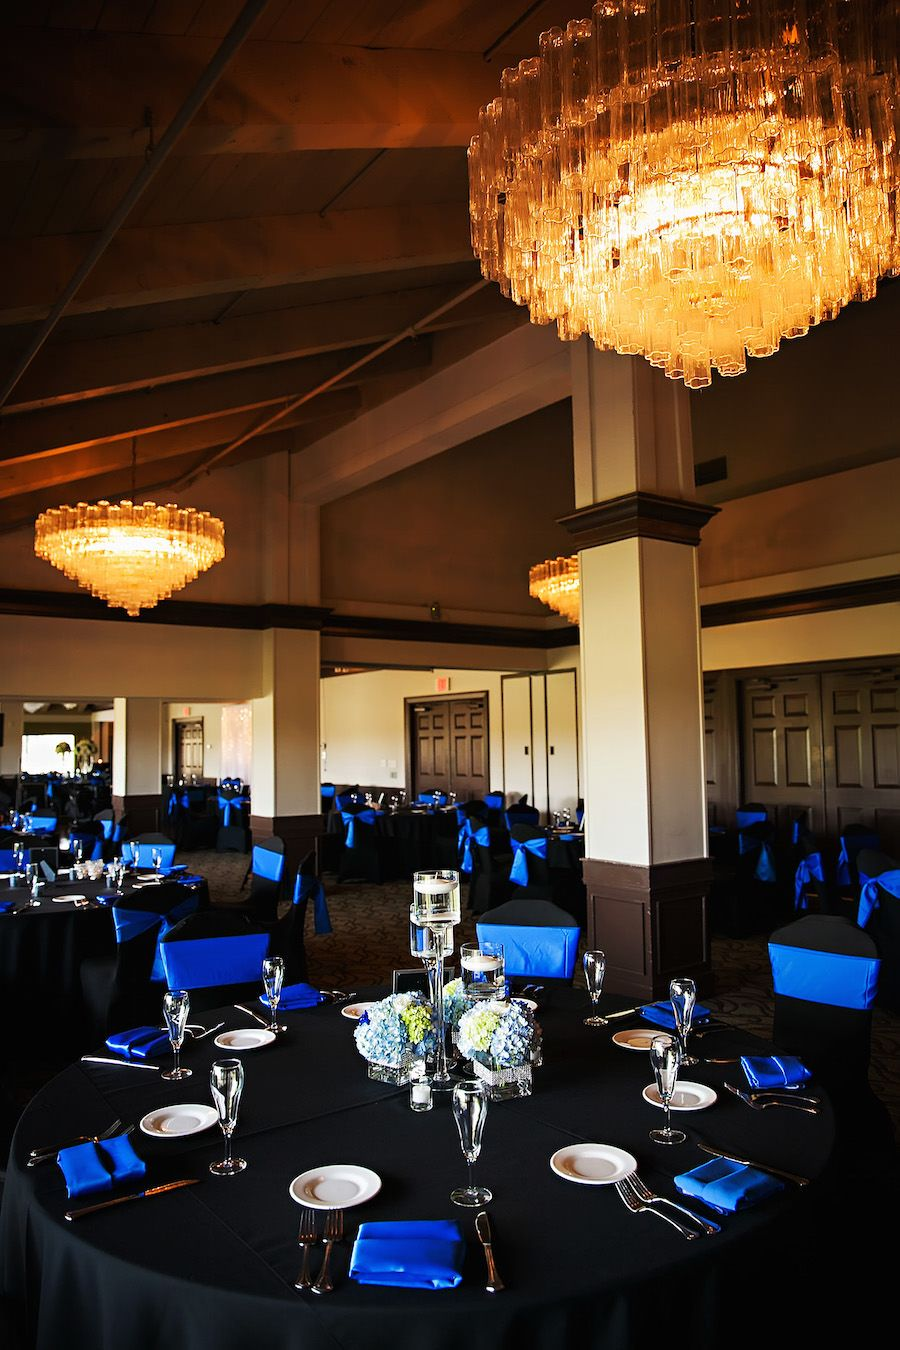 Traditional Wedding Reception Décor with Black Tablecloths